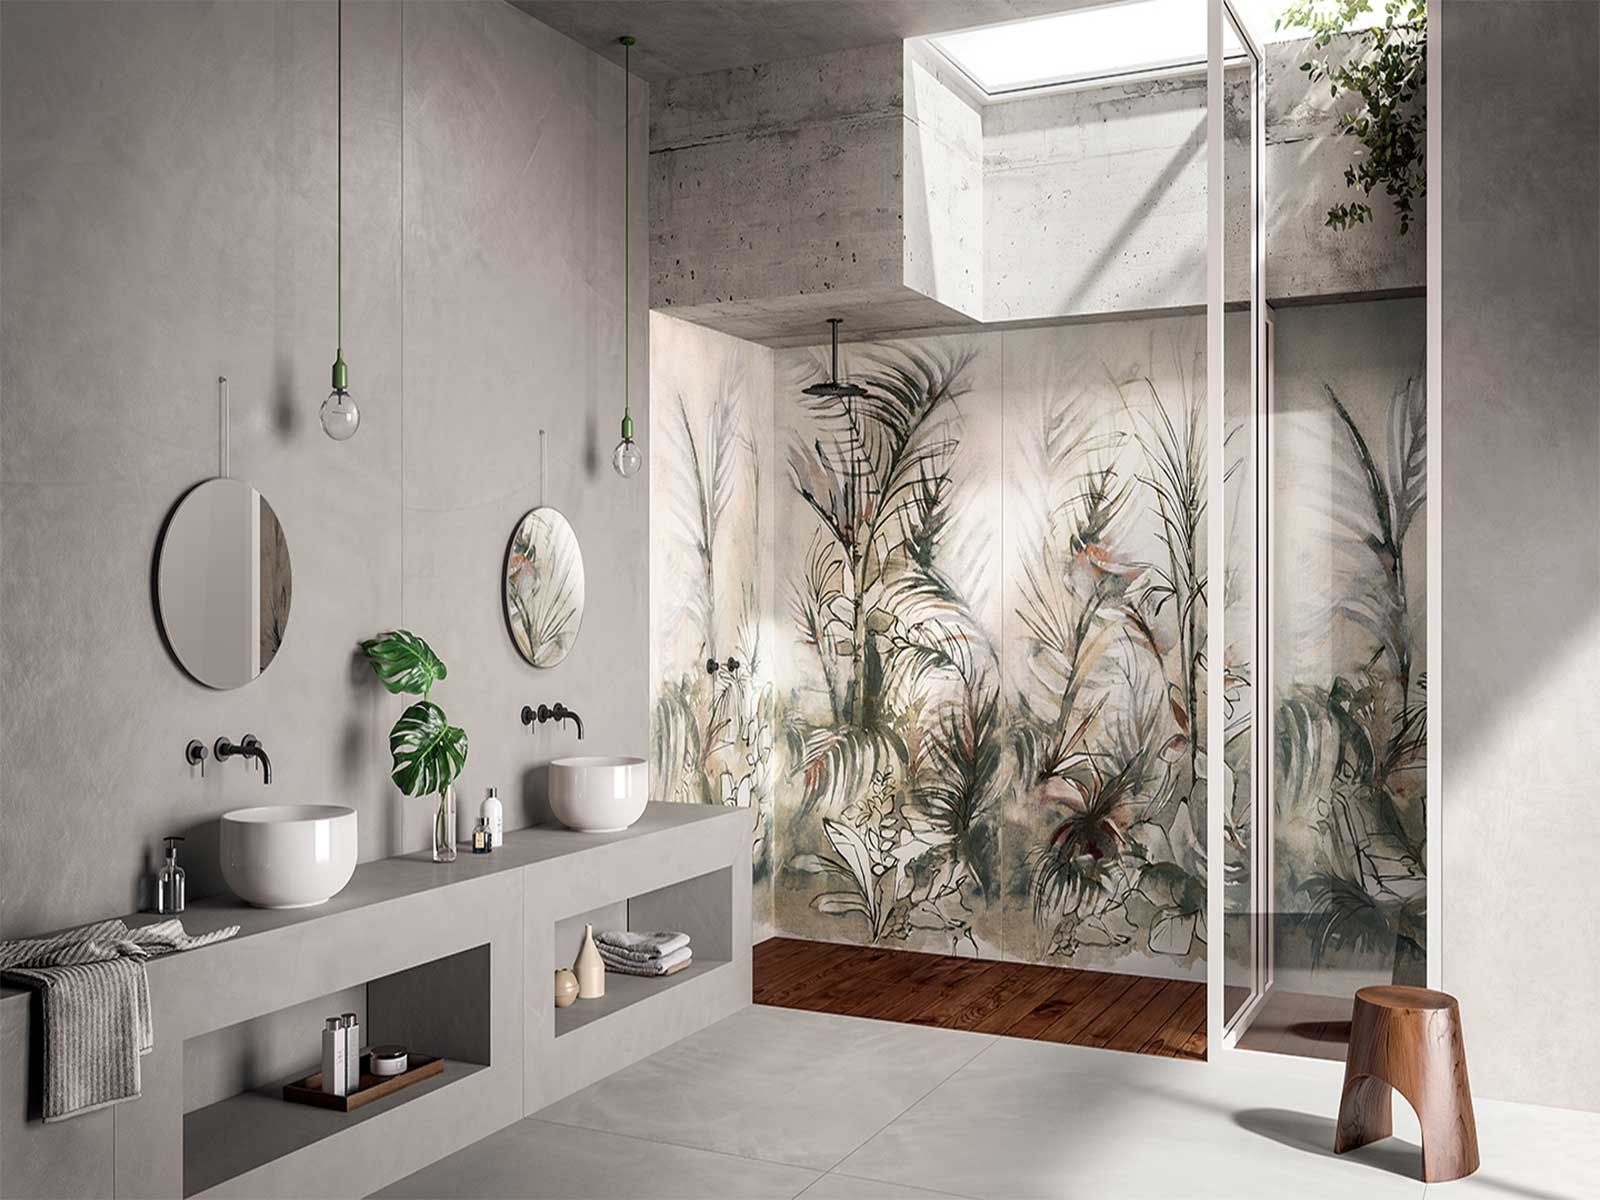 Ceramiche Santin Grandi lastre Dream Jungle 120x240 di Fondovalle